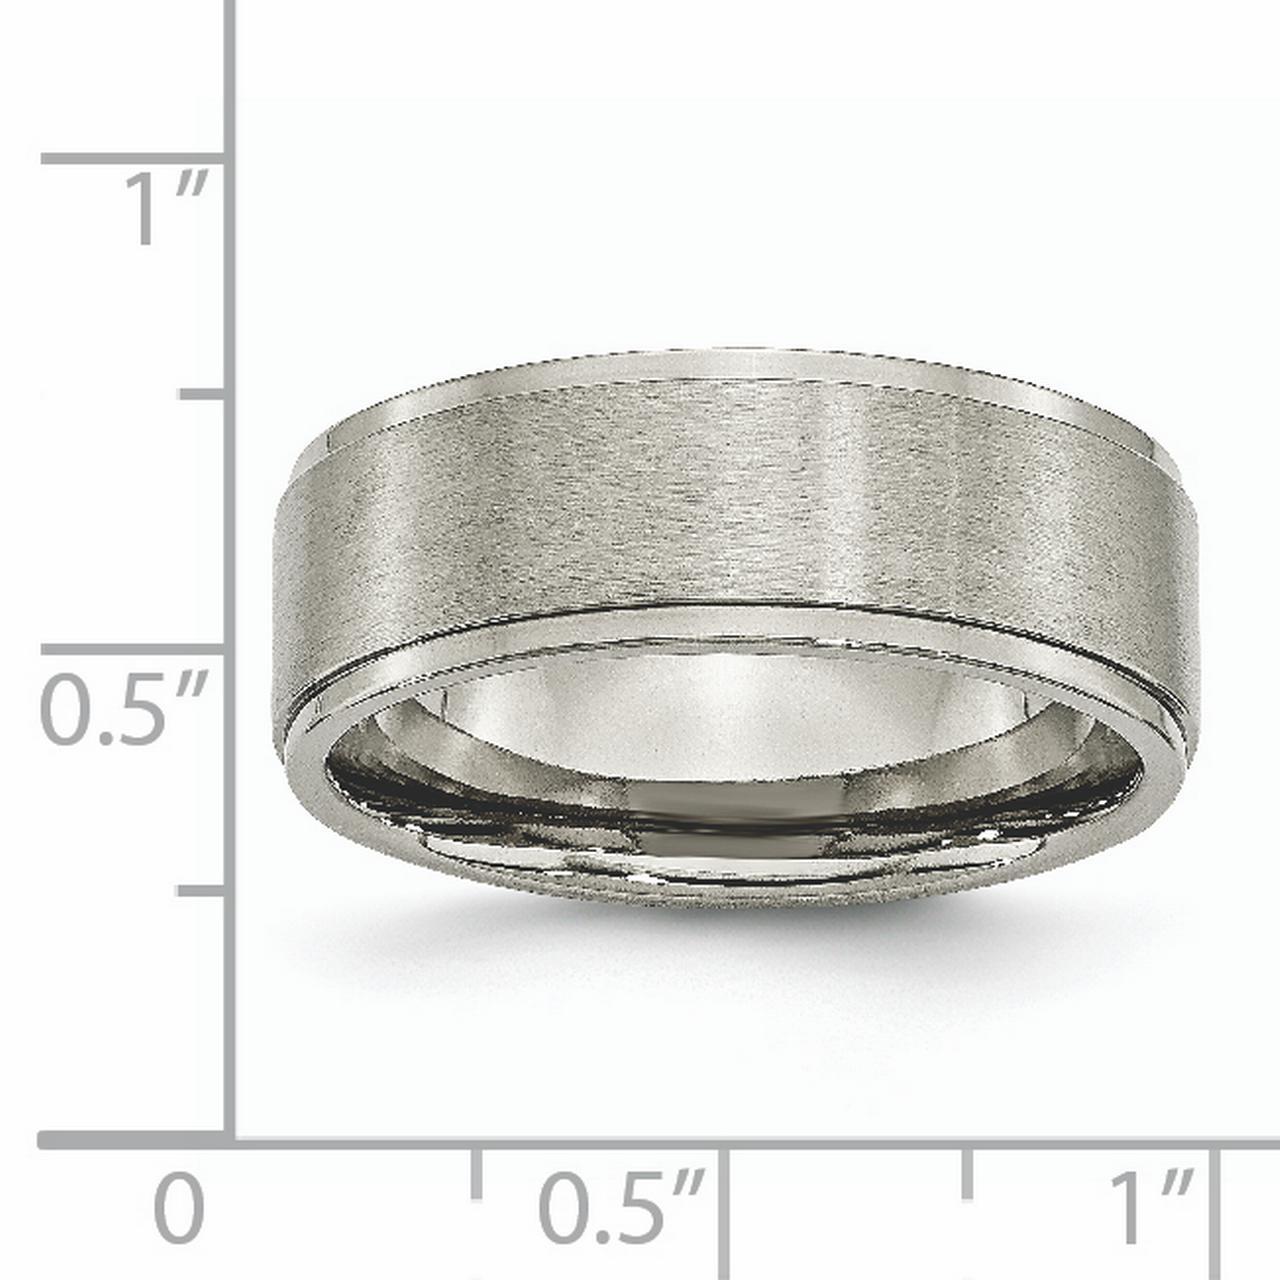 Titanium Ridged Edge 8mm Brushed Wedding Ring Band Size 8.50 Classic Flat W/edge Fashion Jewelry Gifts For Women For Her - image 5 of 6